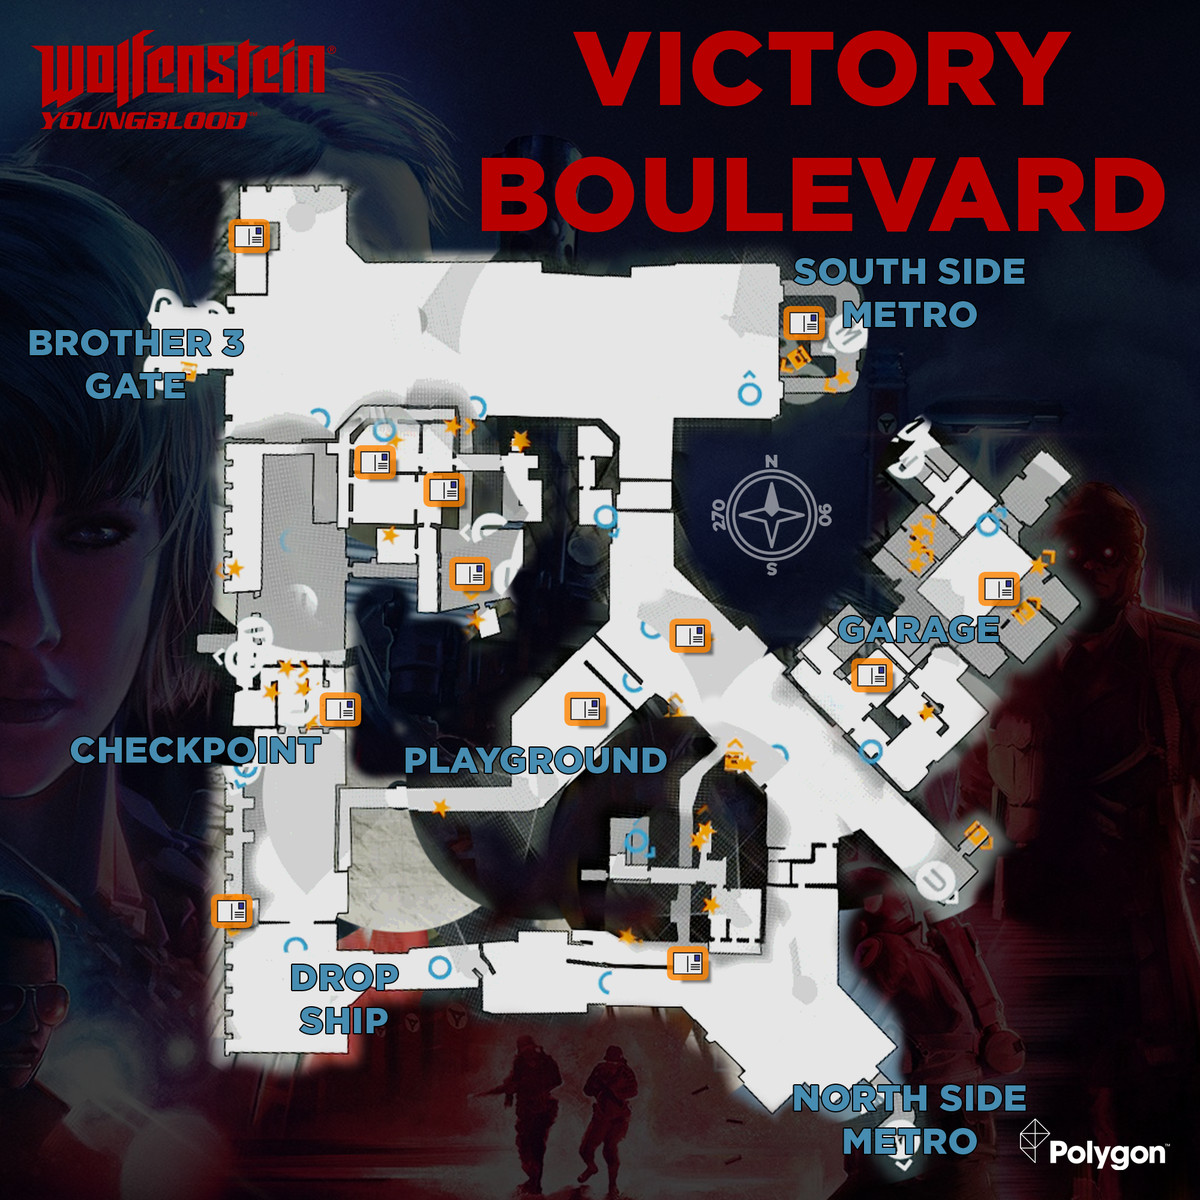 Wolfenstein: Youngblood Victory Boulevard map with Readable collectible locations